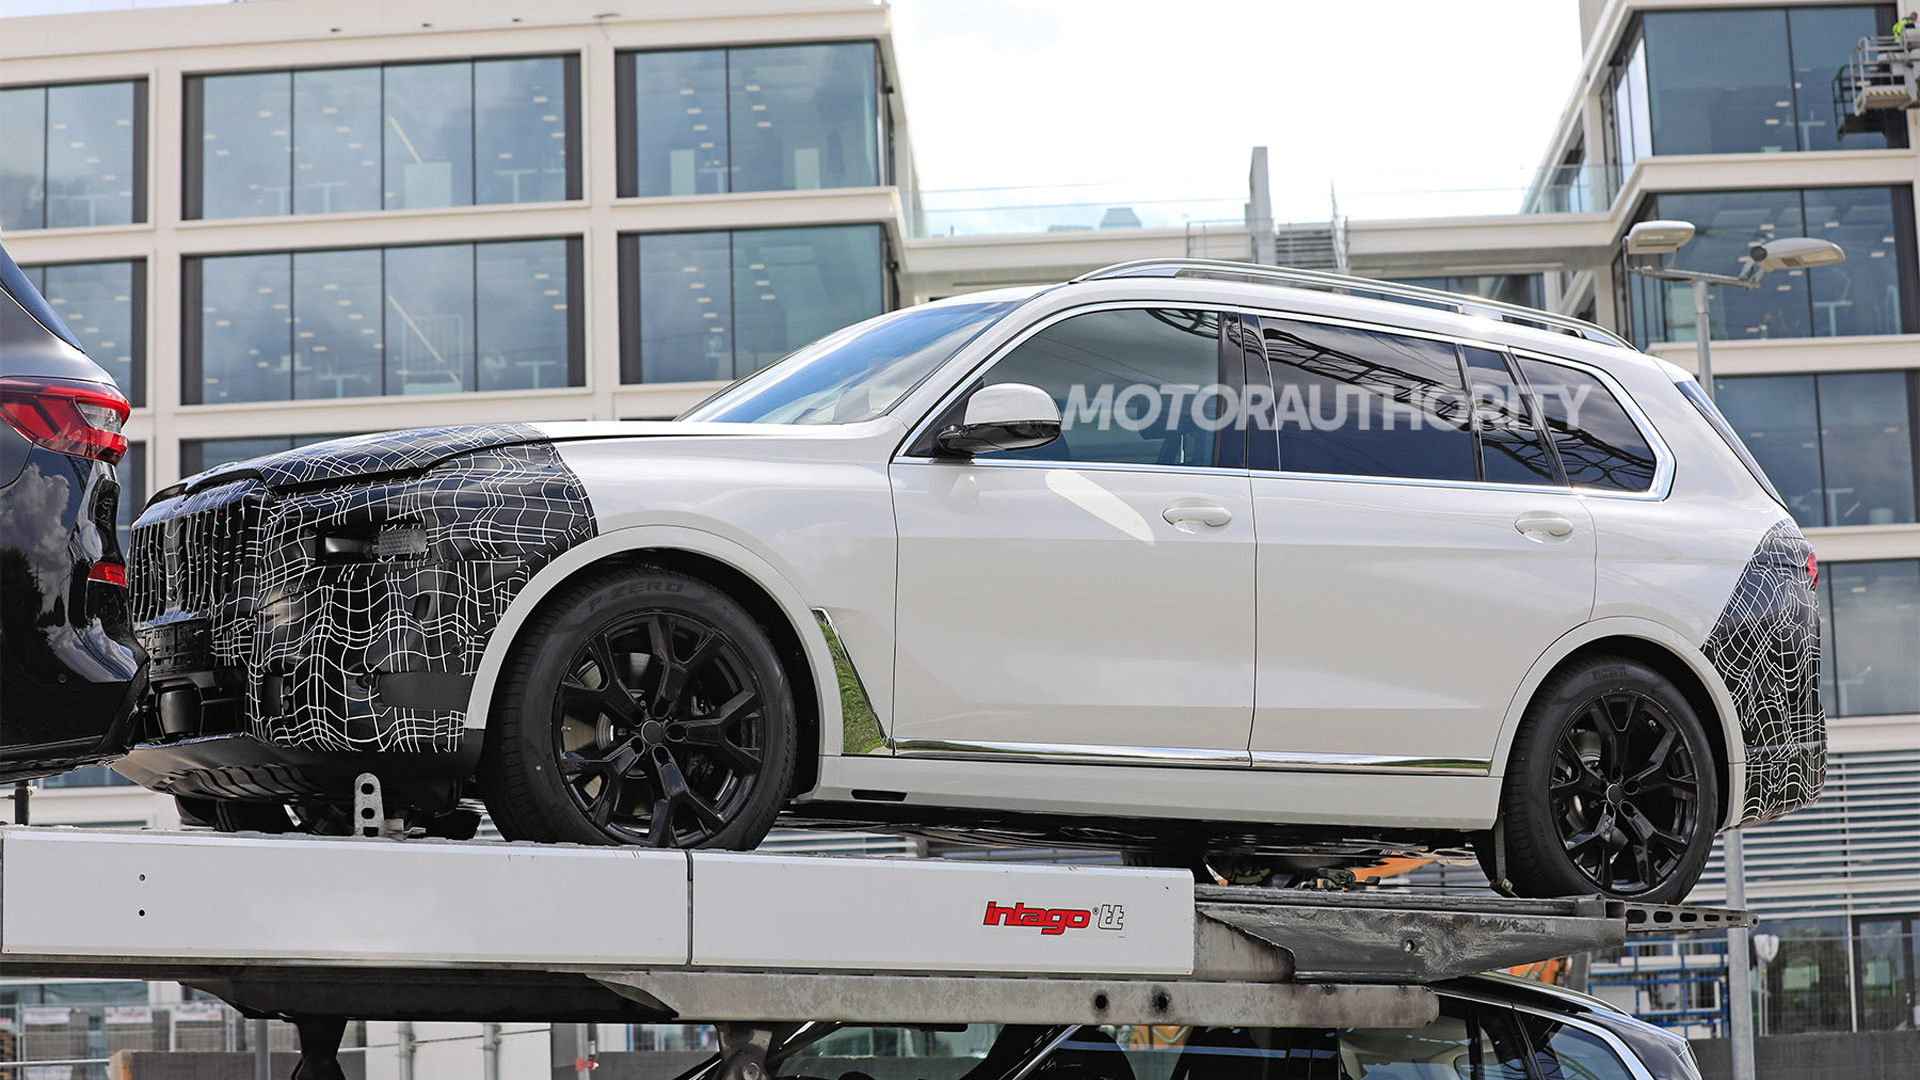 2023 BMW X7 spy shots - Photo credit: S. Baldauf/SB-Medien